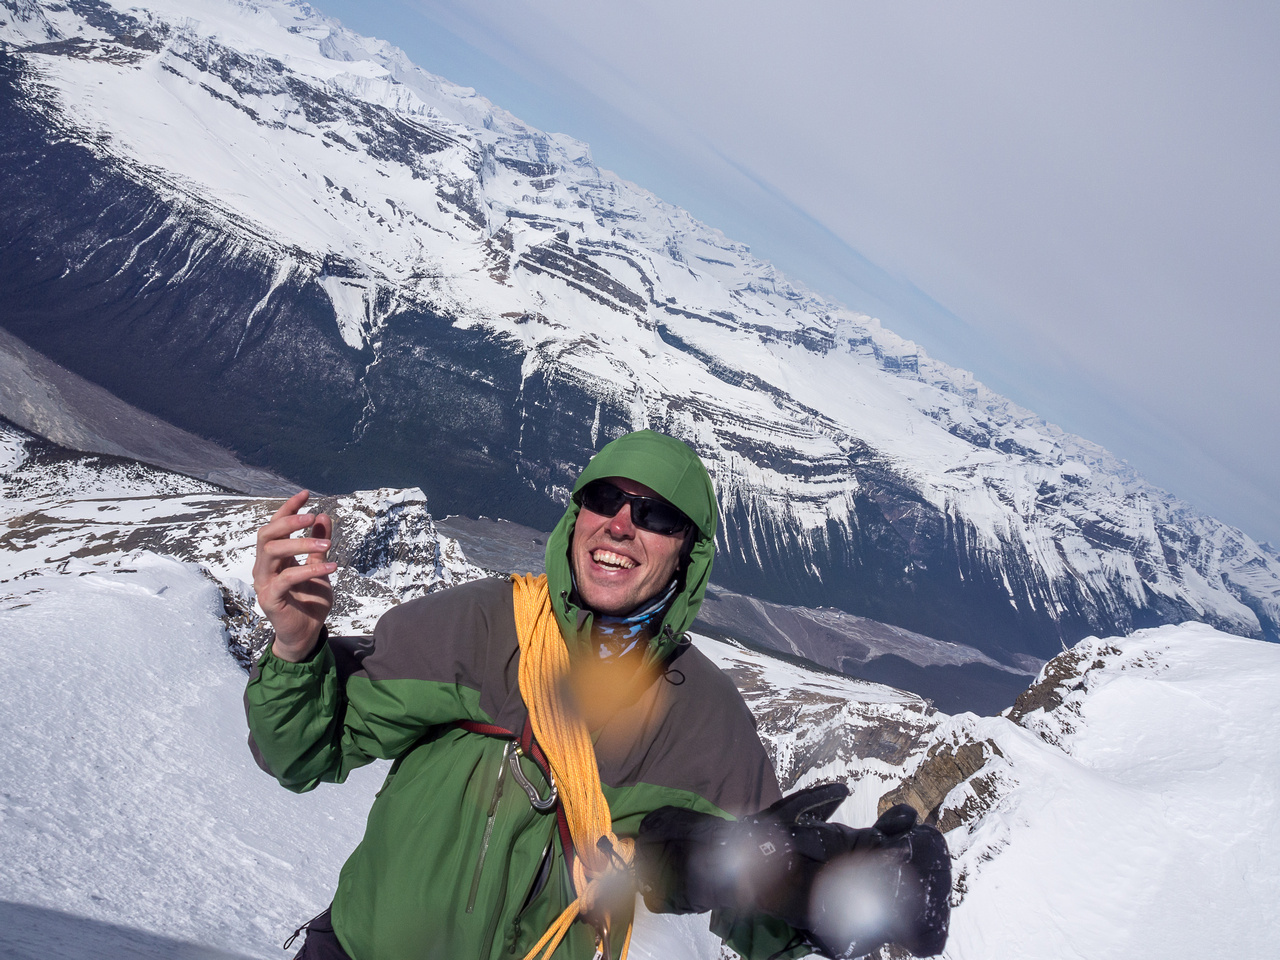 JW on the summit of Twins Tower - obviously quite pleased with himself!